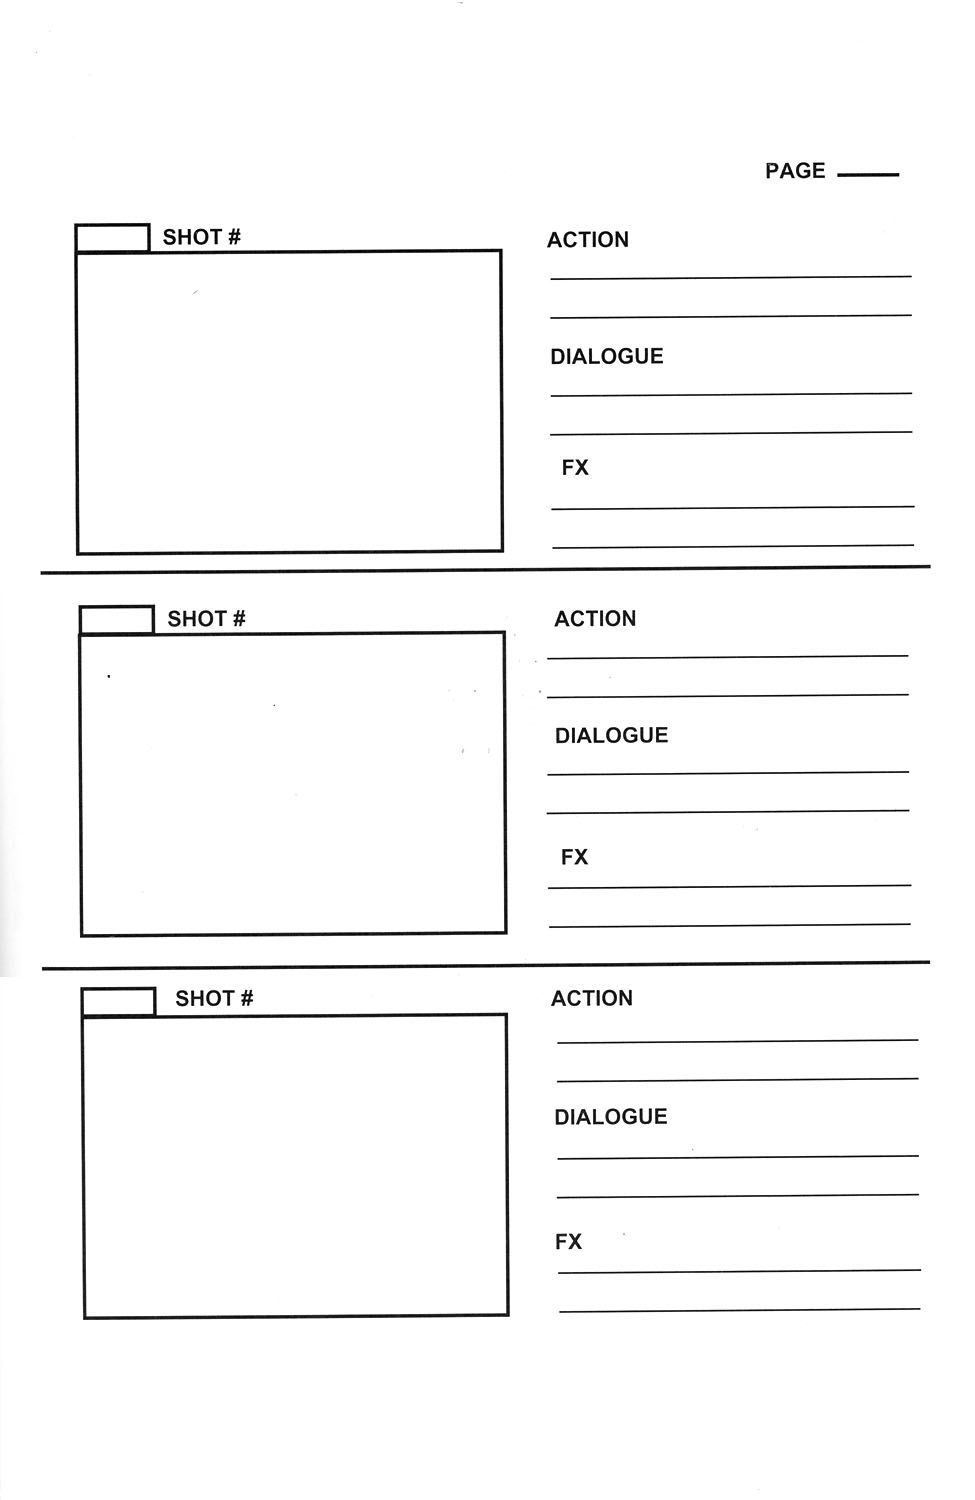 Storyboard templates pontydysgu mooc for Camera script template